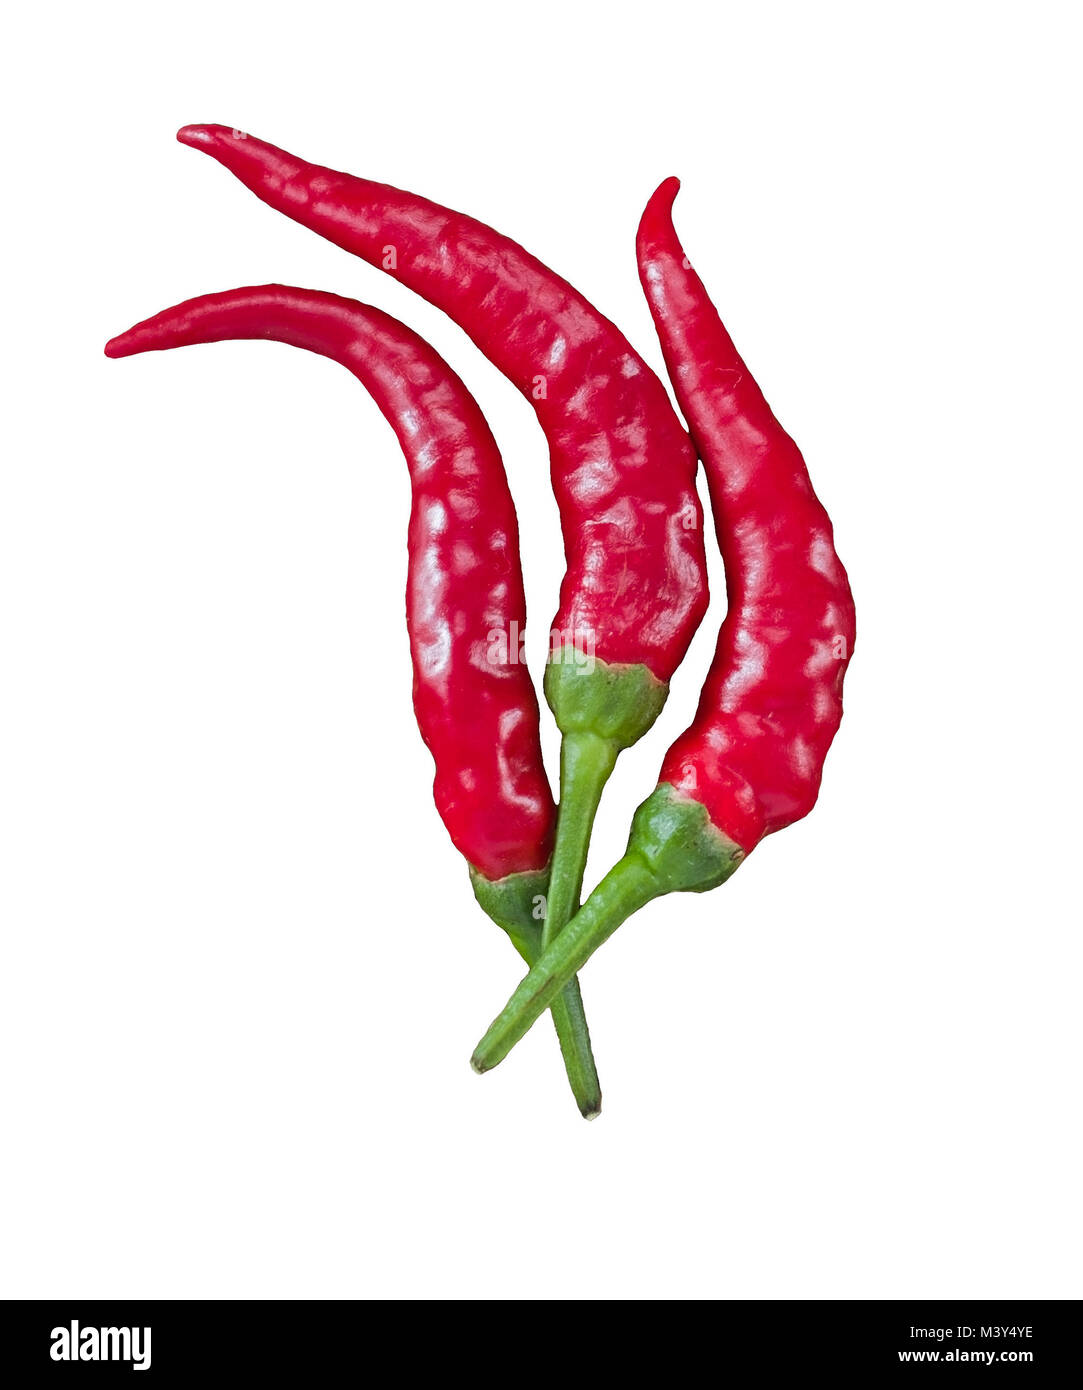 3 beautiful red chili peppers flame-shaped on white background - Stock Image